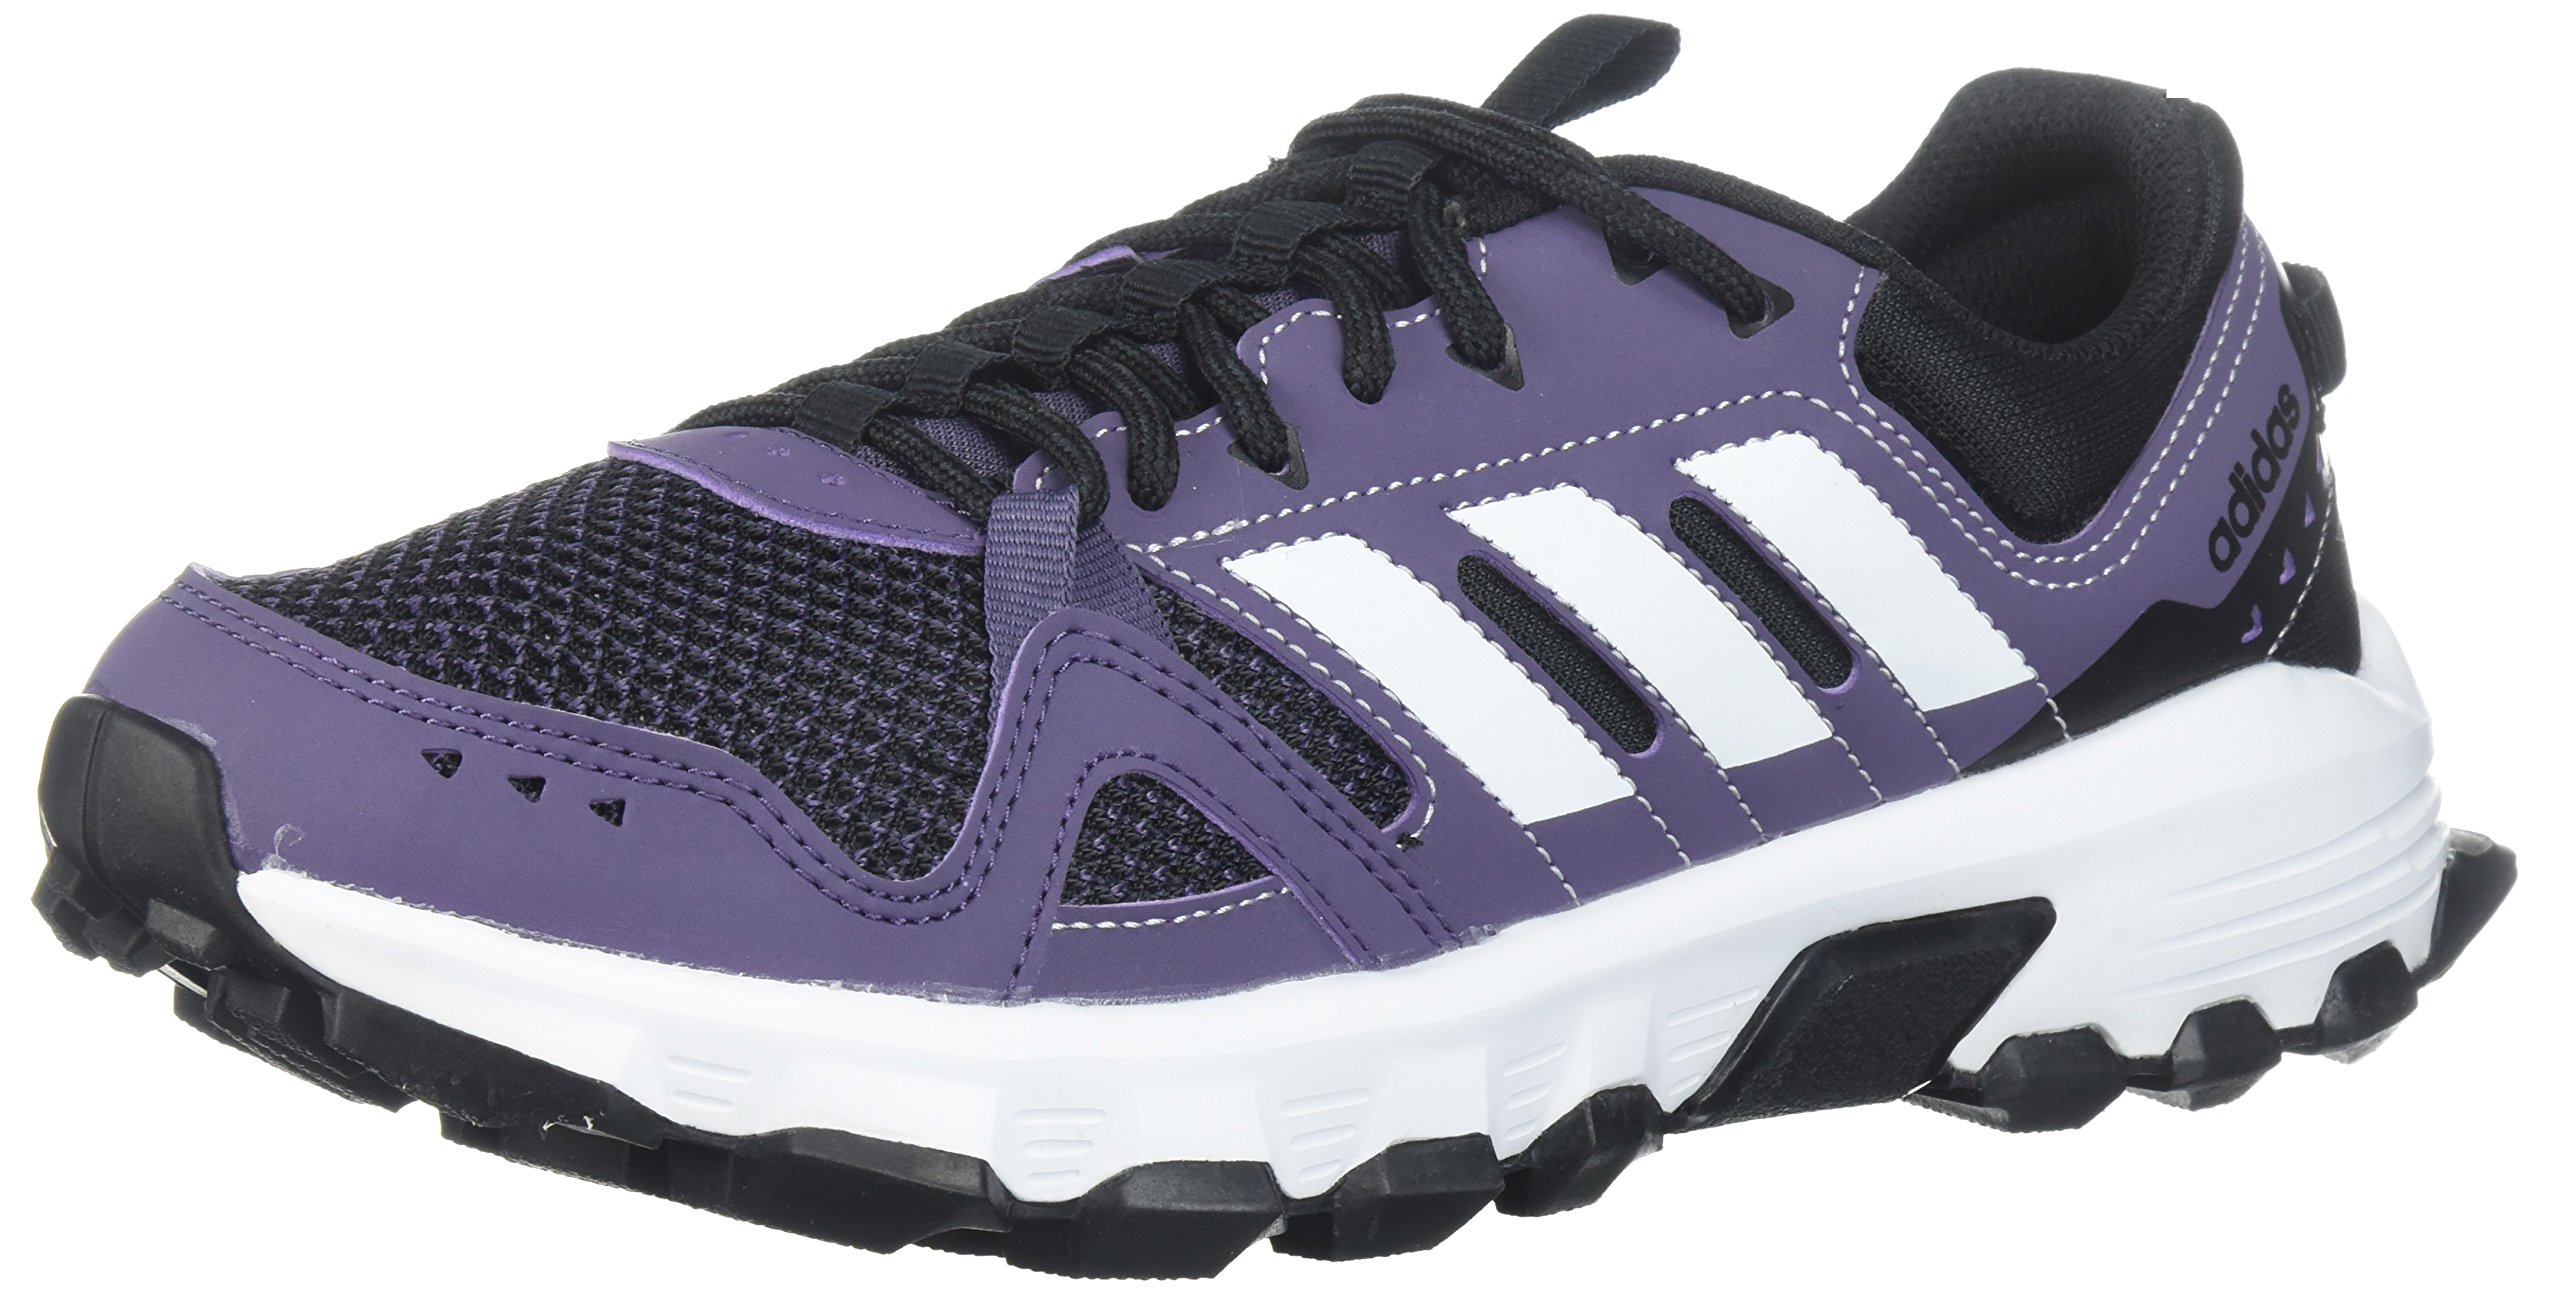 adidas Women's Rockadia w Trail Running Shoe, Trace Purple/White/Core Black, 7 M US by adidas (Image #1)